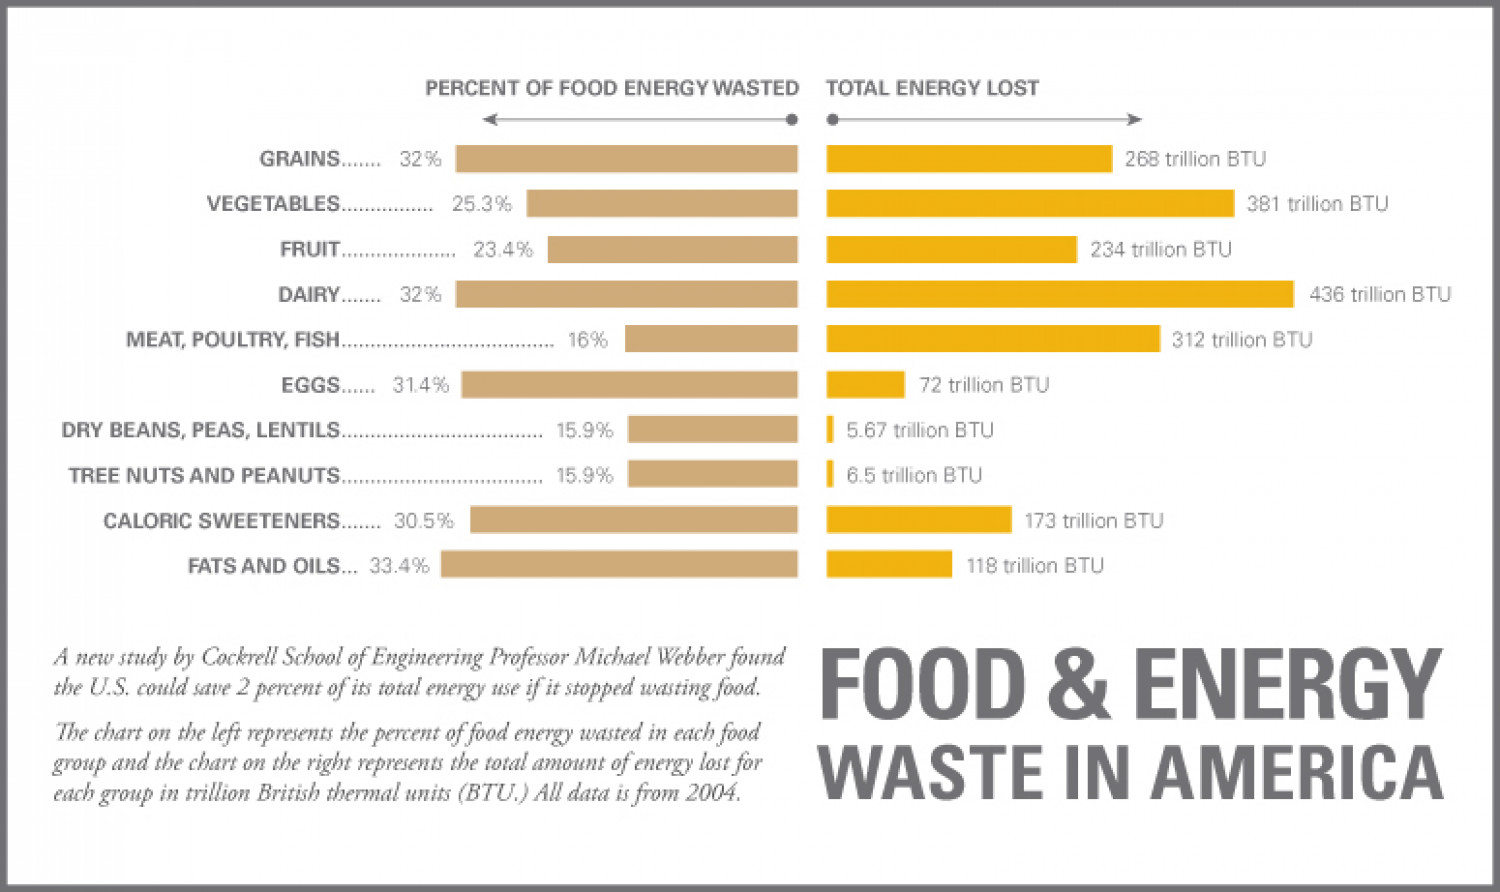 Food & Energy Waste In America Infographic